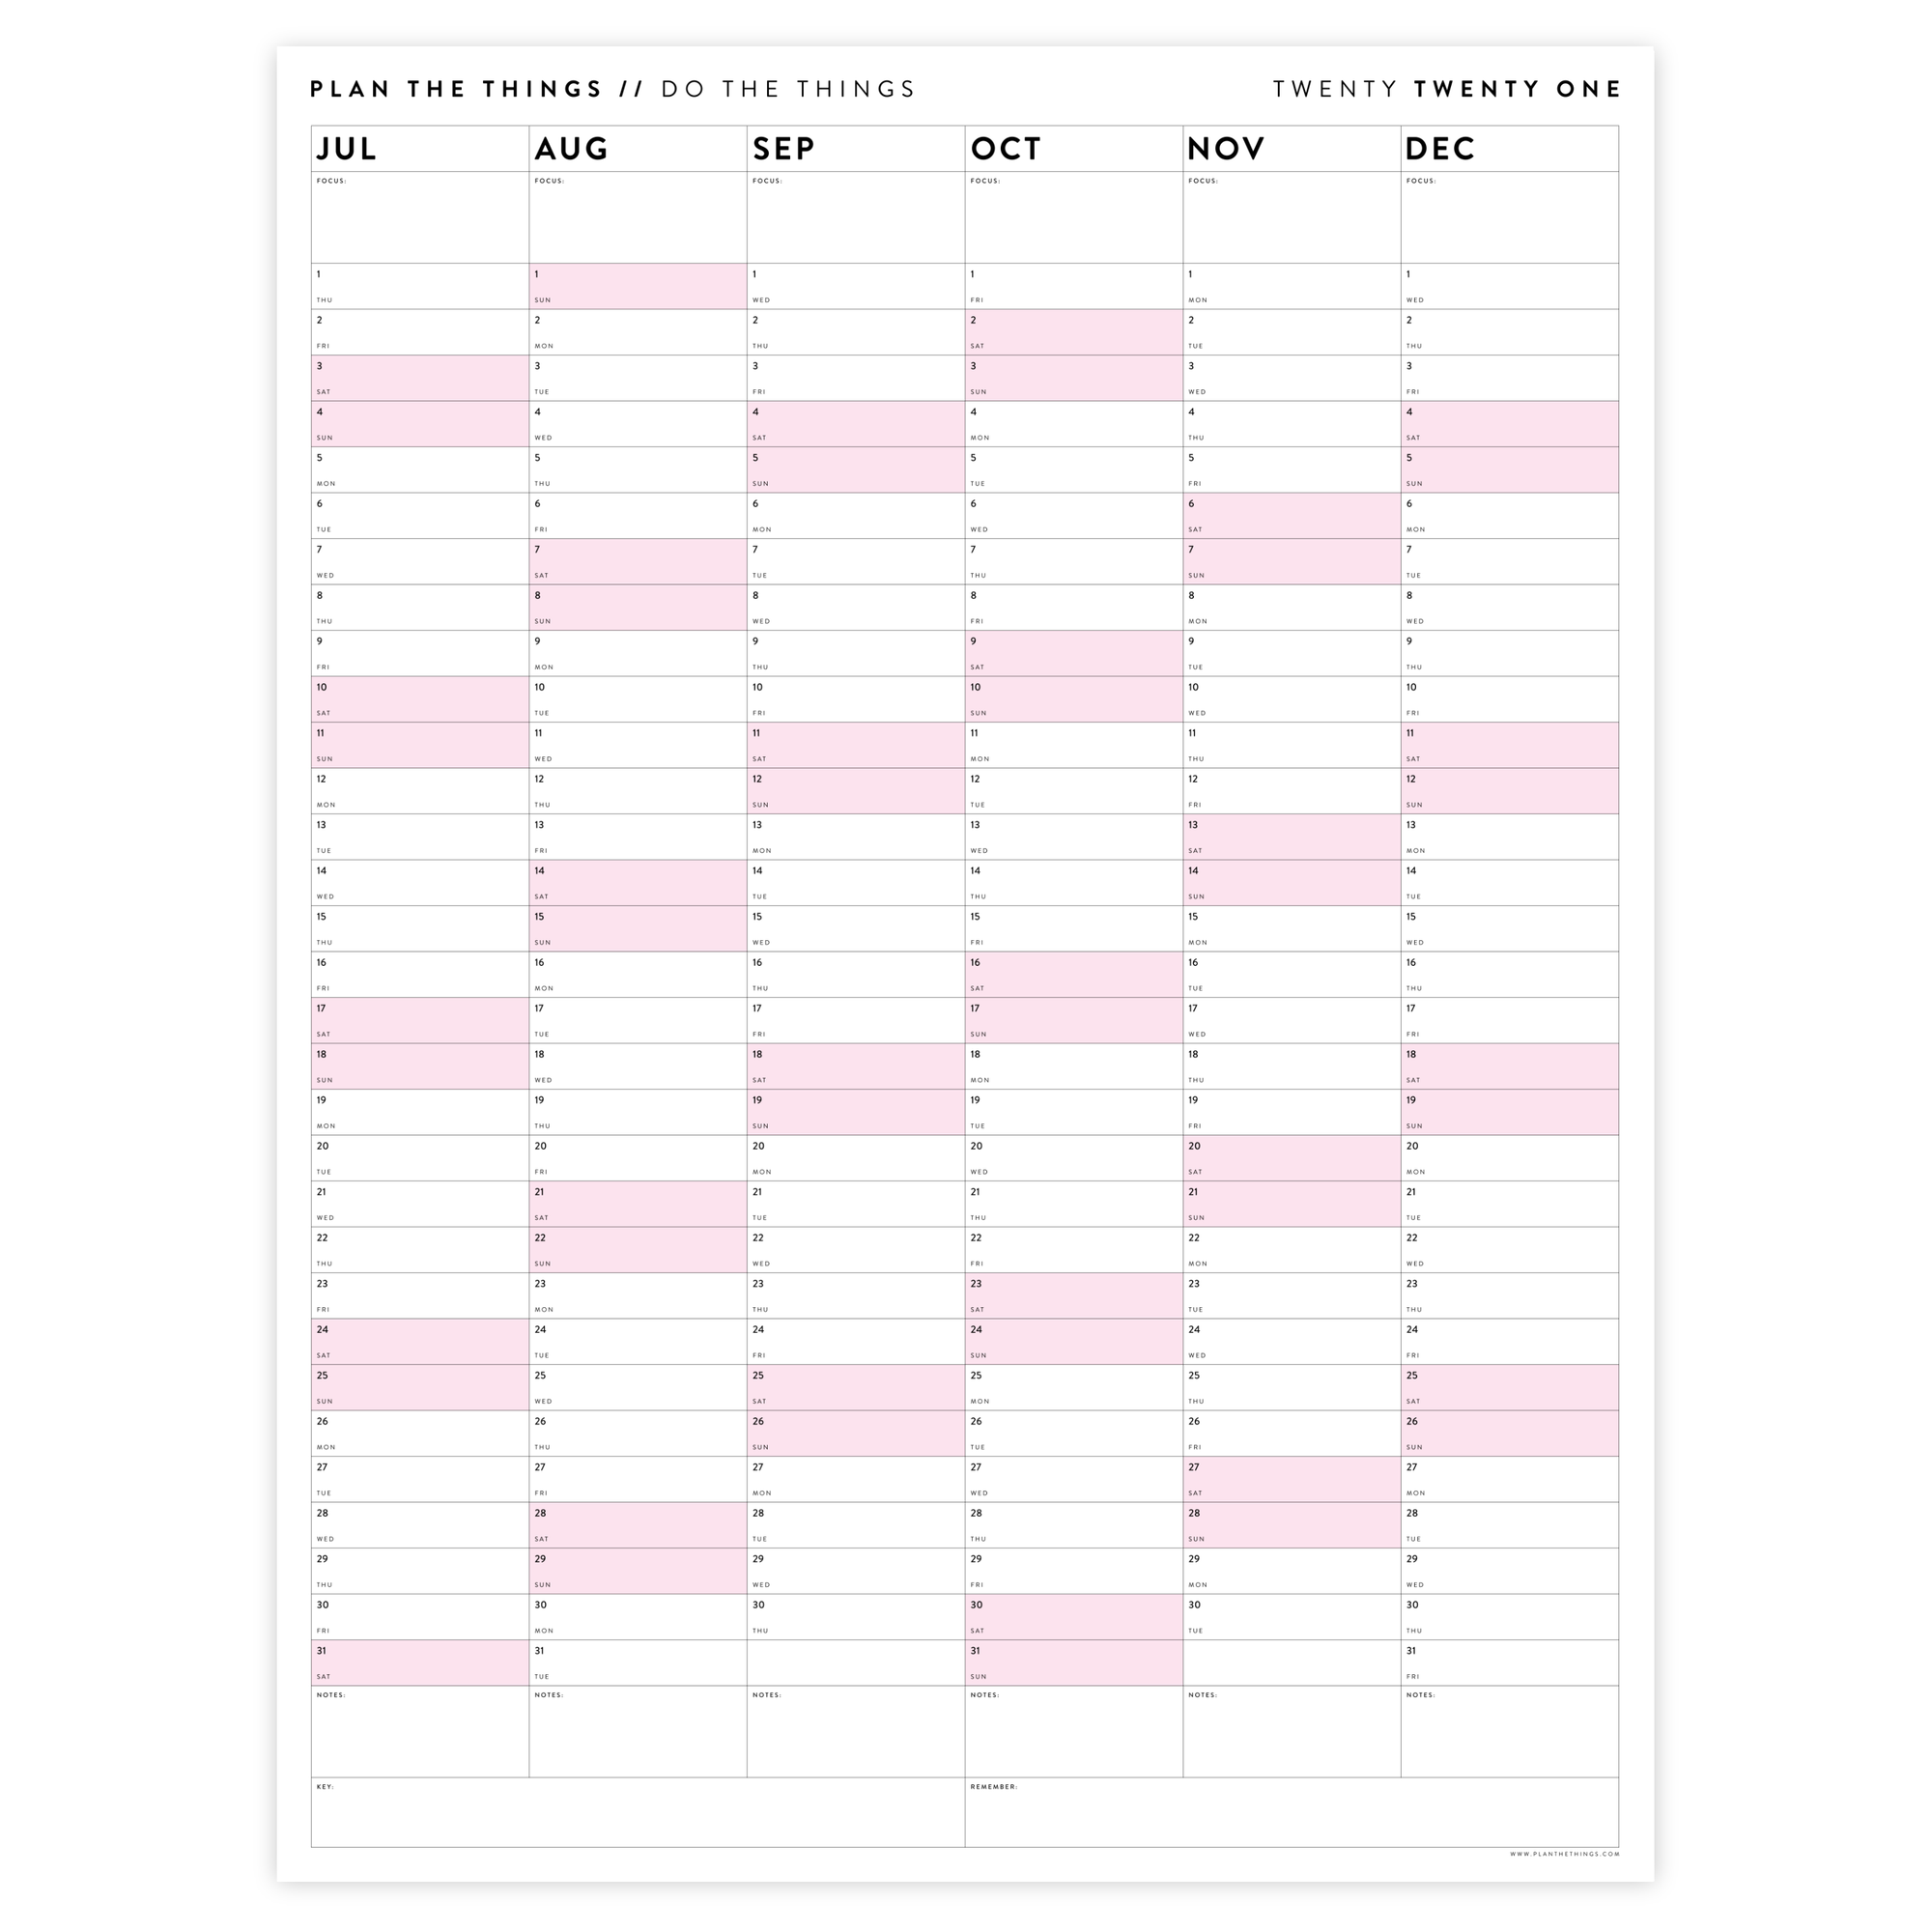 SIX MONTH 2021 WALL CALENDAR (JULY TO DECEMBER) WITH PINK WEEKENDS